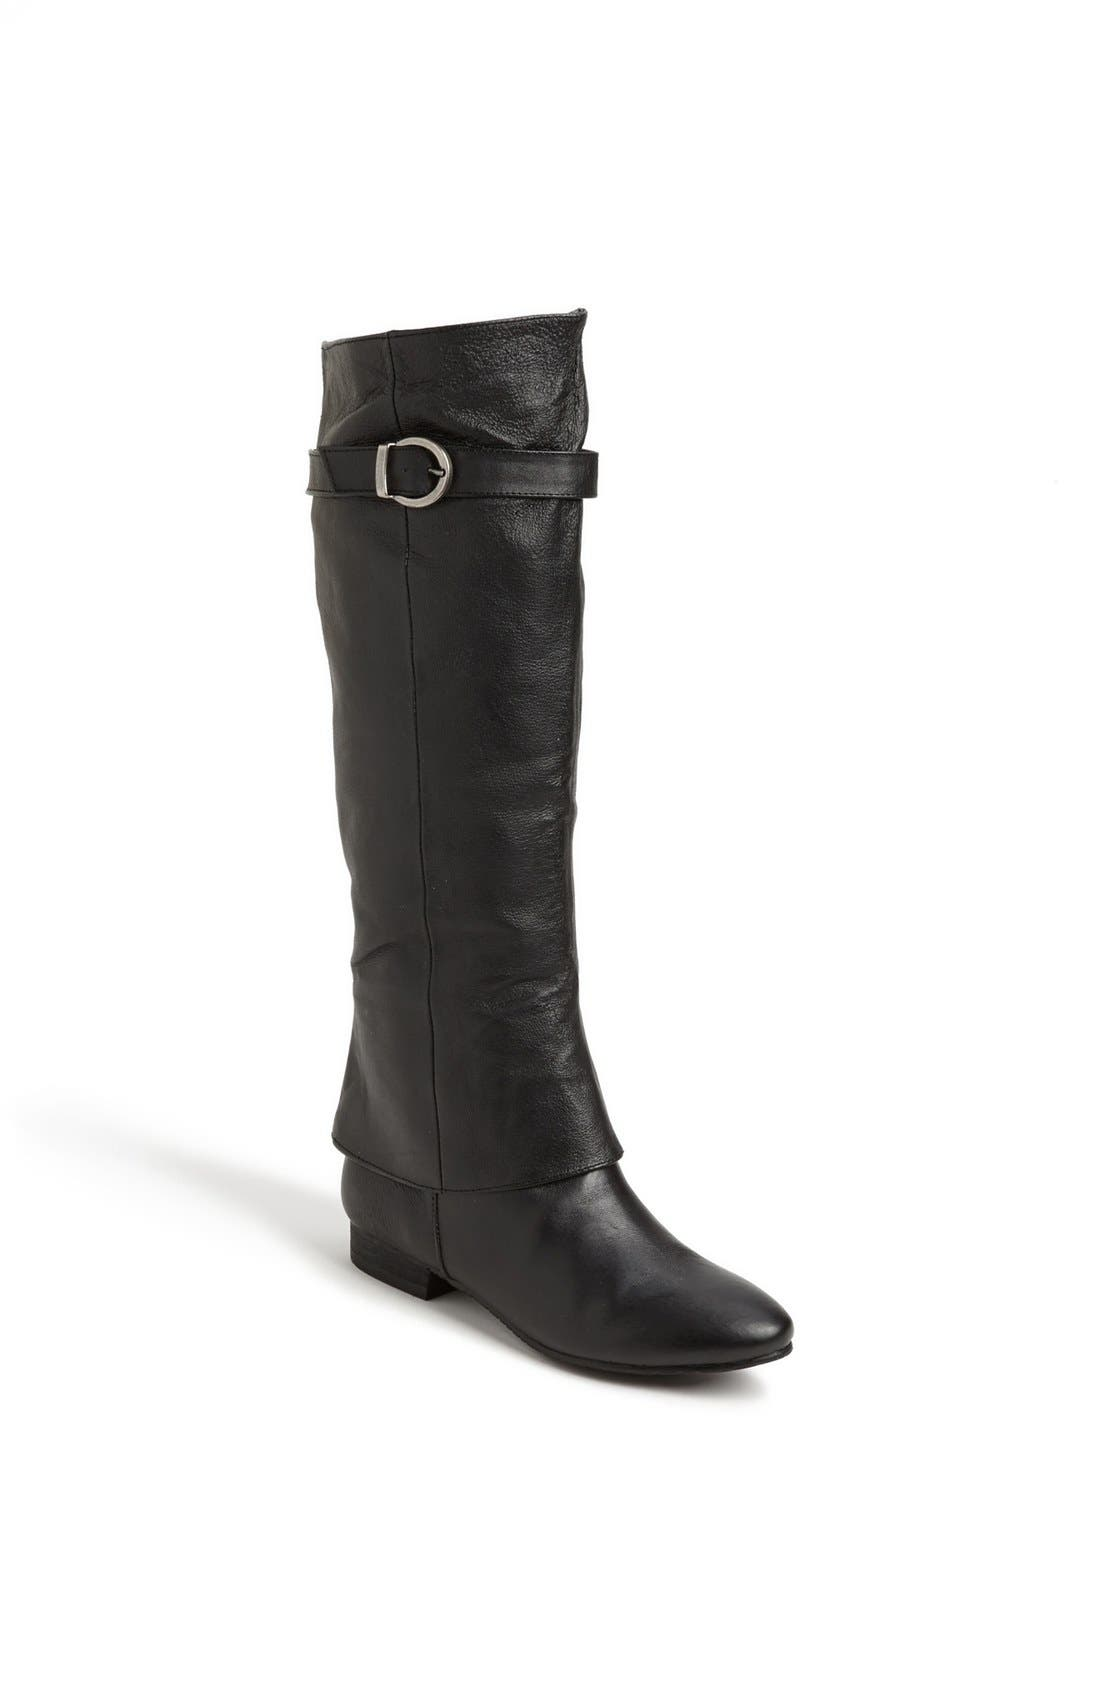 Alternate Image 1 Selected - Chinese Laundry 'Set in Stone' Boot